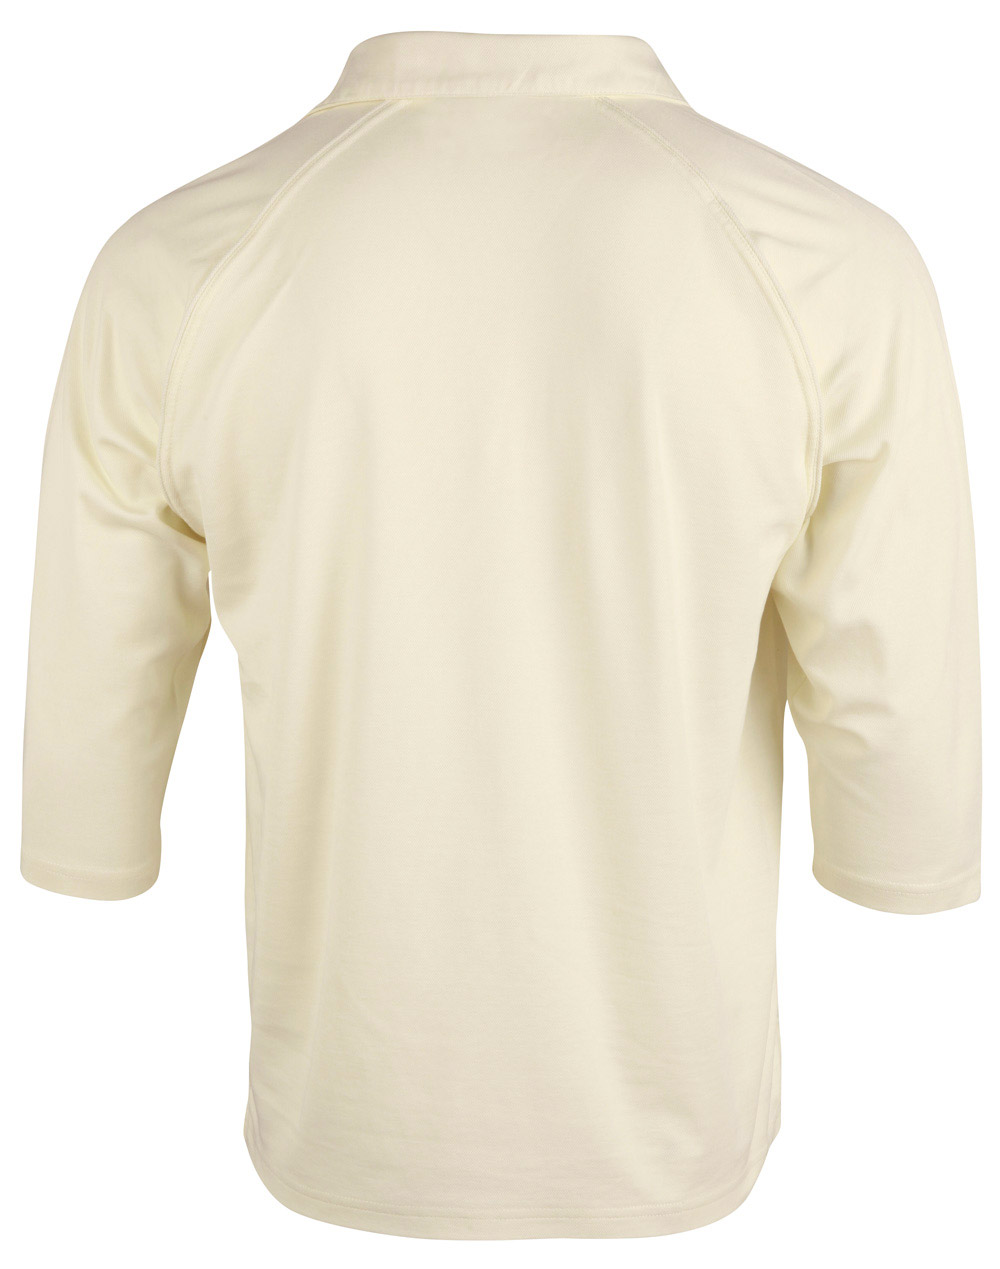 https://s3-ap-southeast-1.amazonaws.com/ws-imgs/POLOSHIRTS/PS29Q_Cream_Back_l.jpg